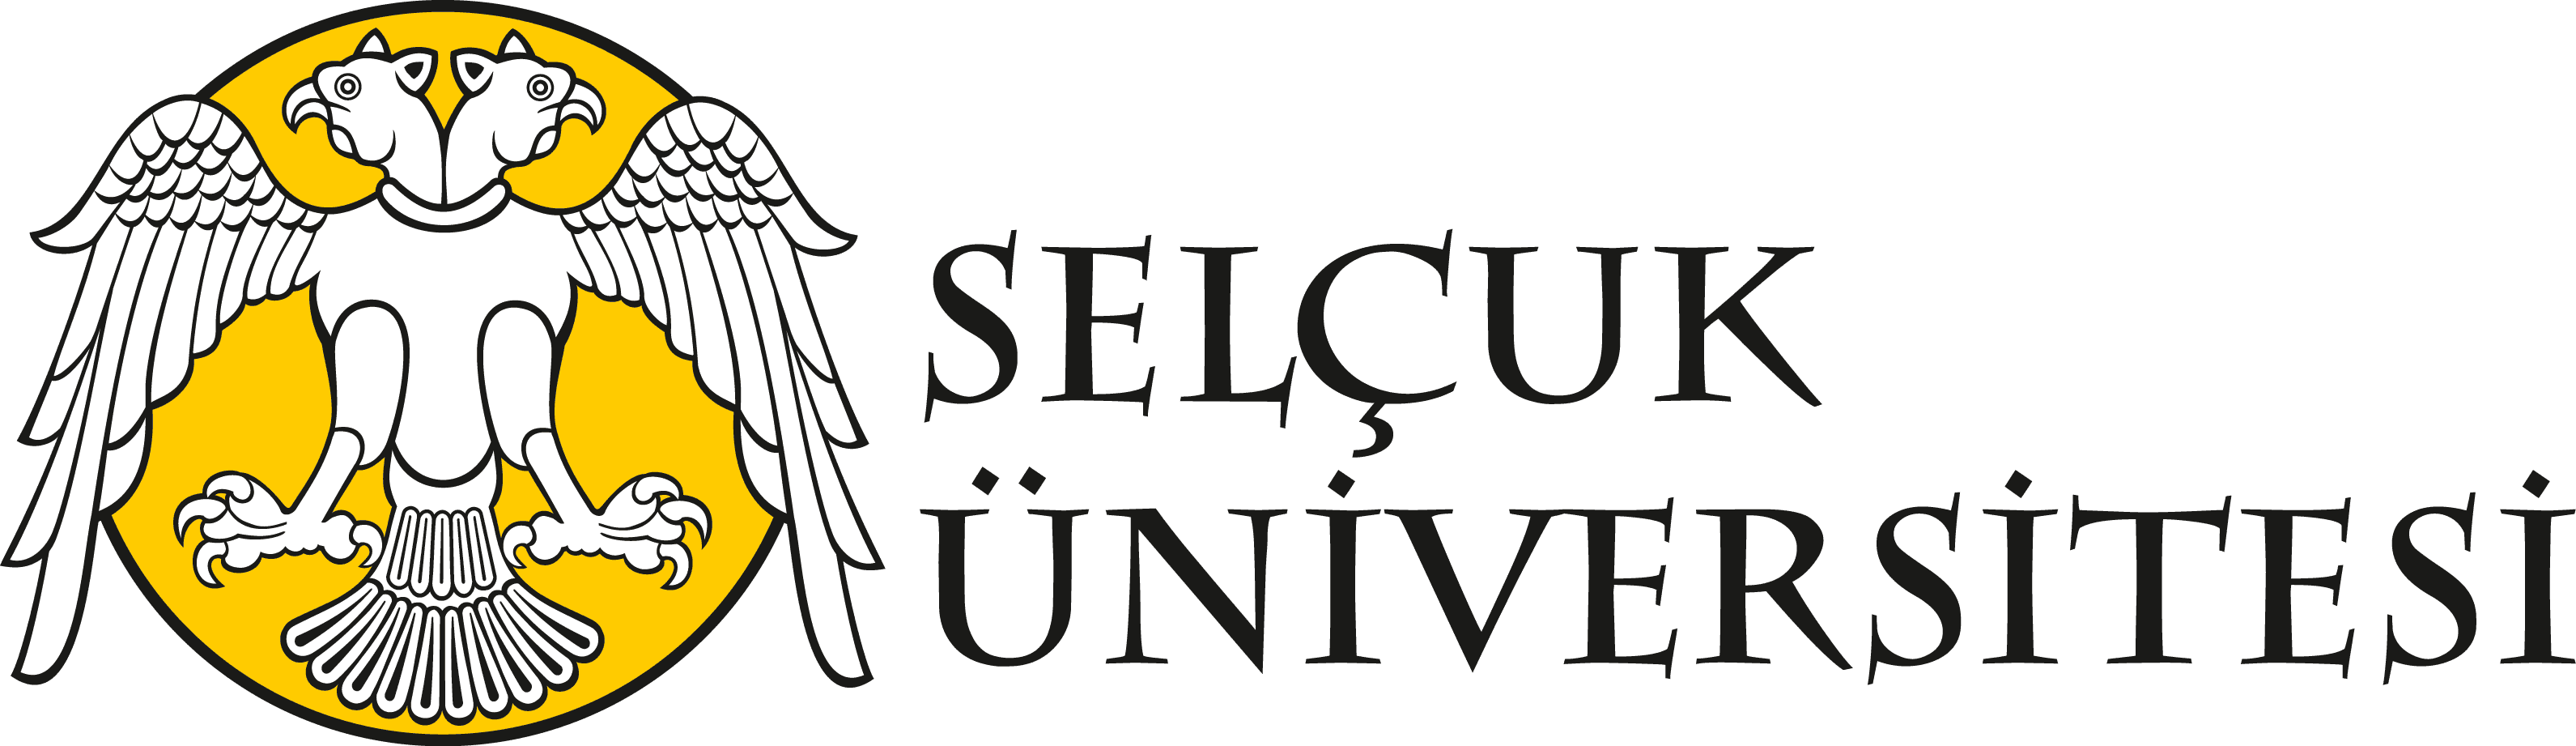 selcuk_universitesi-logo